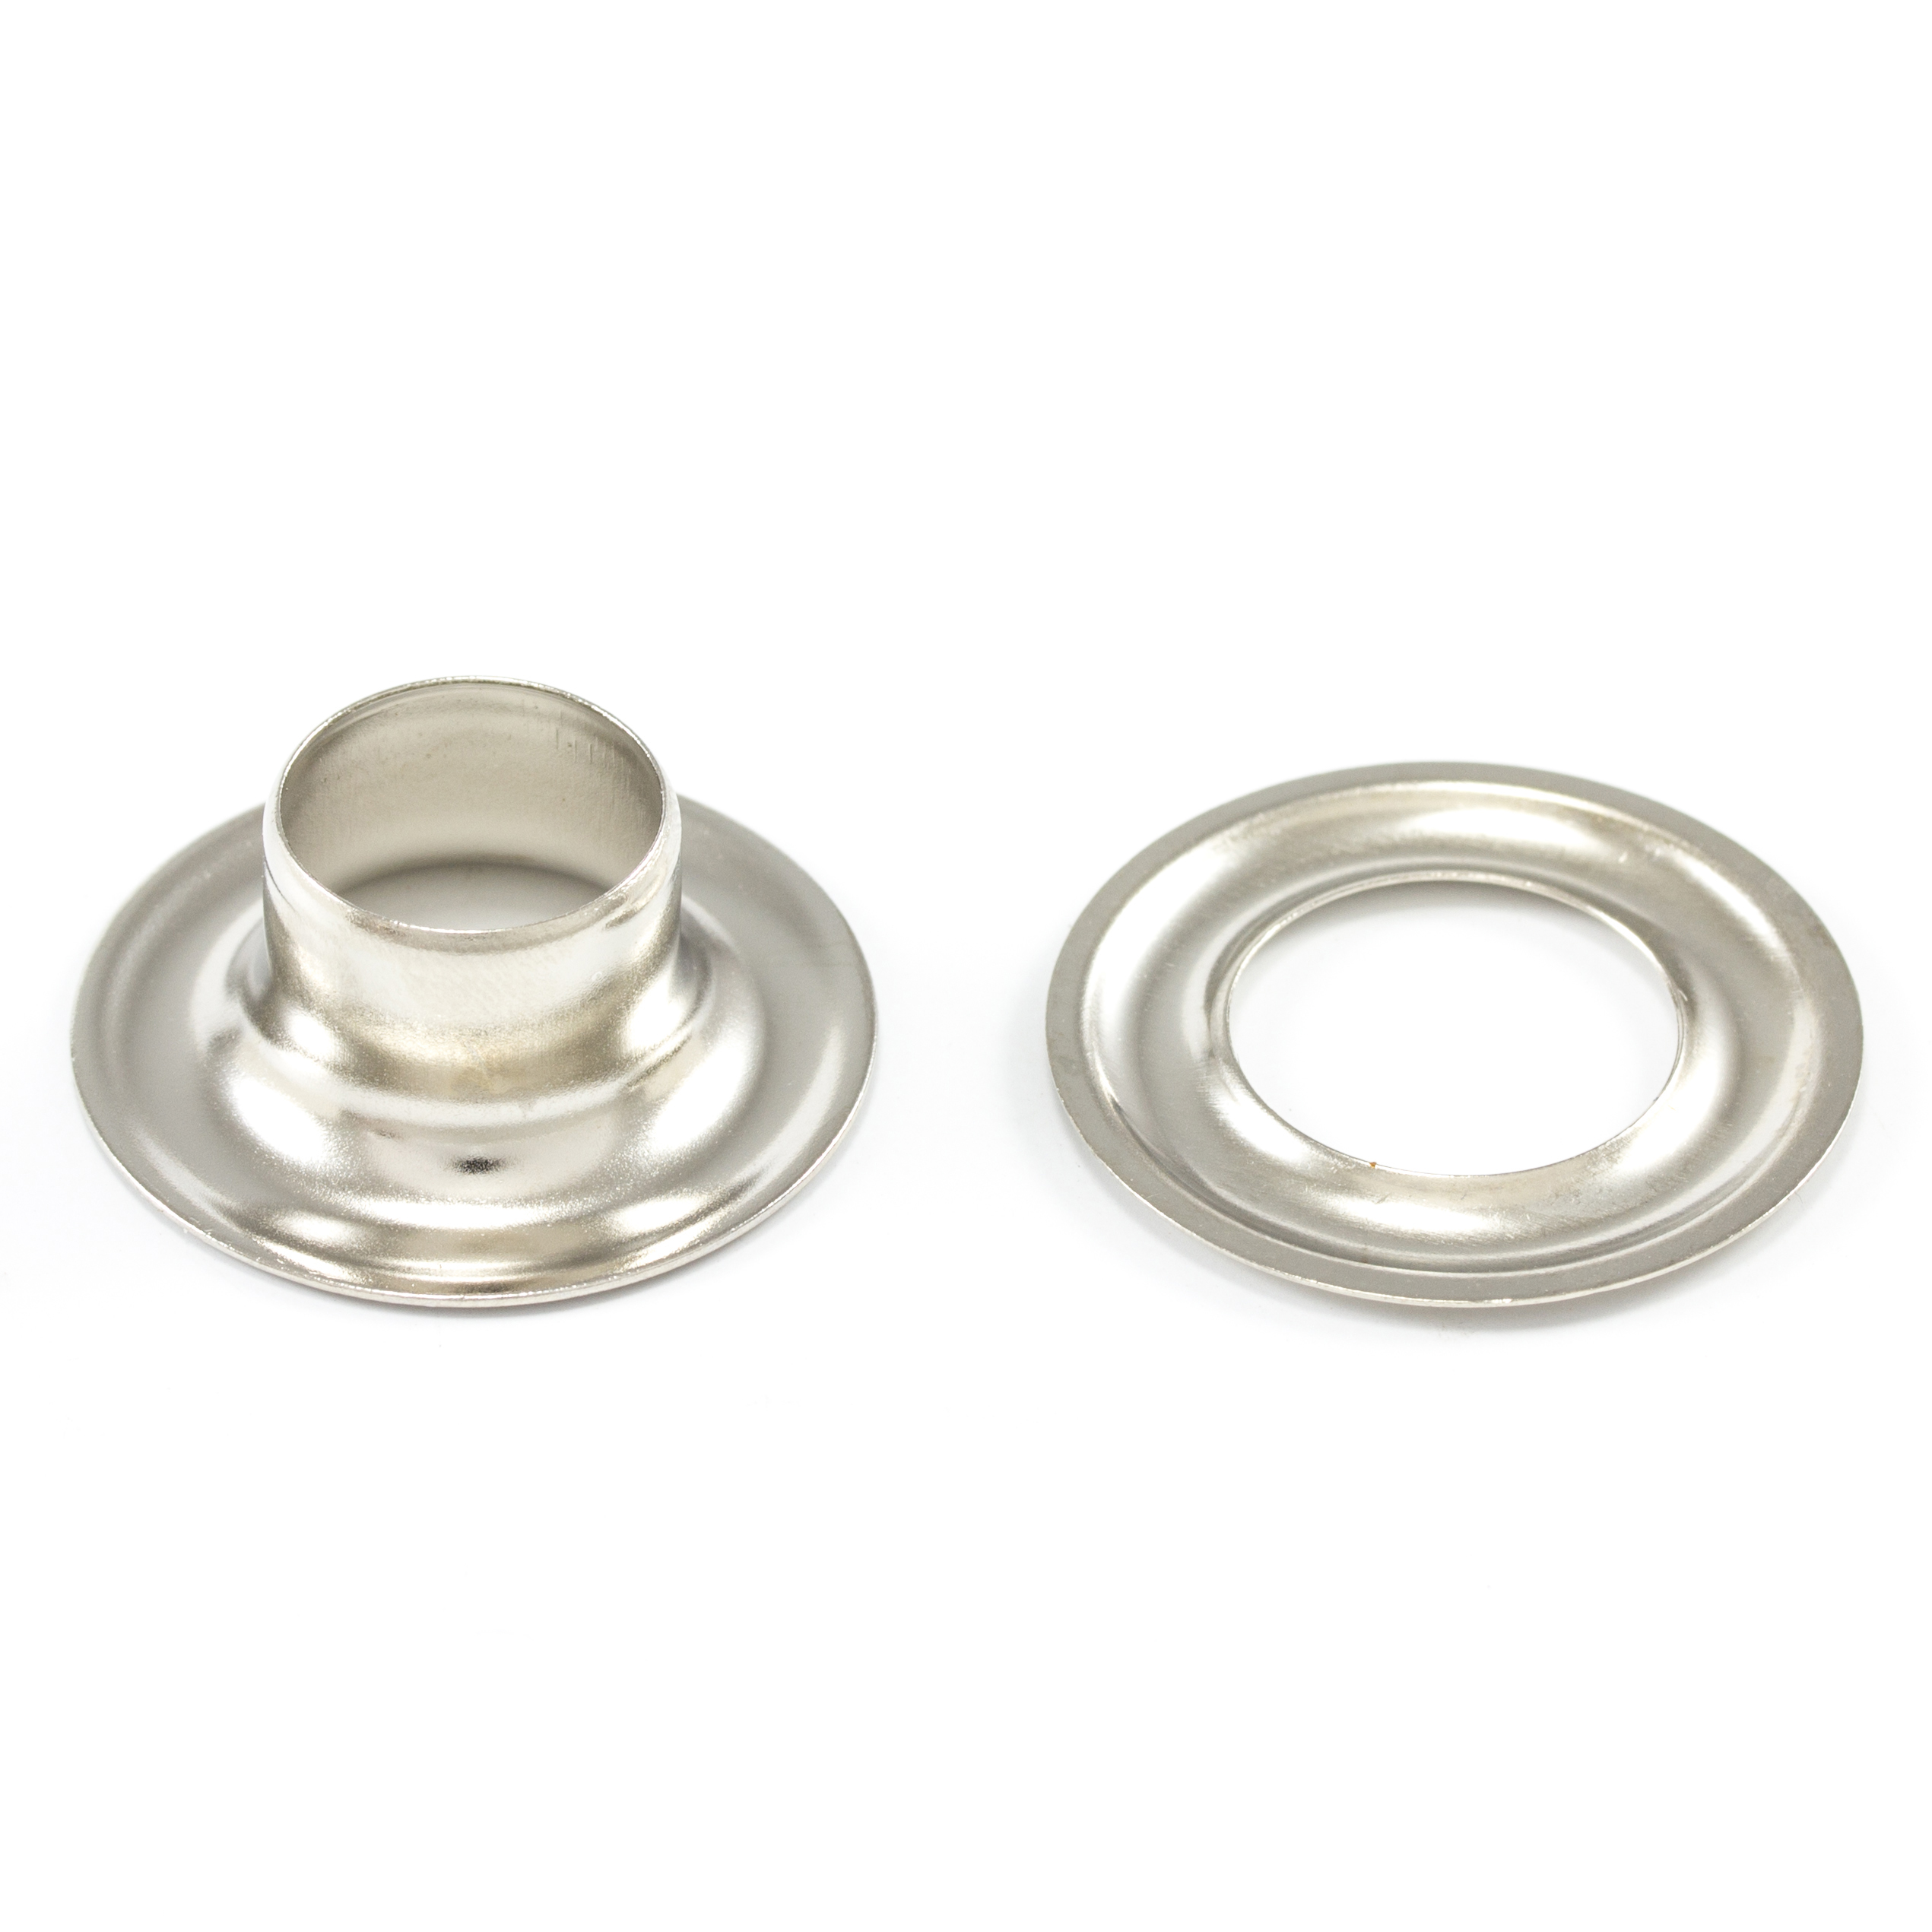 Thumbnail DOT Grommet with Plain Washer #4 Nickel Plated Brass 1/2 0